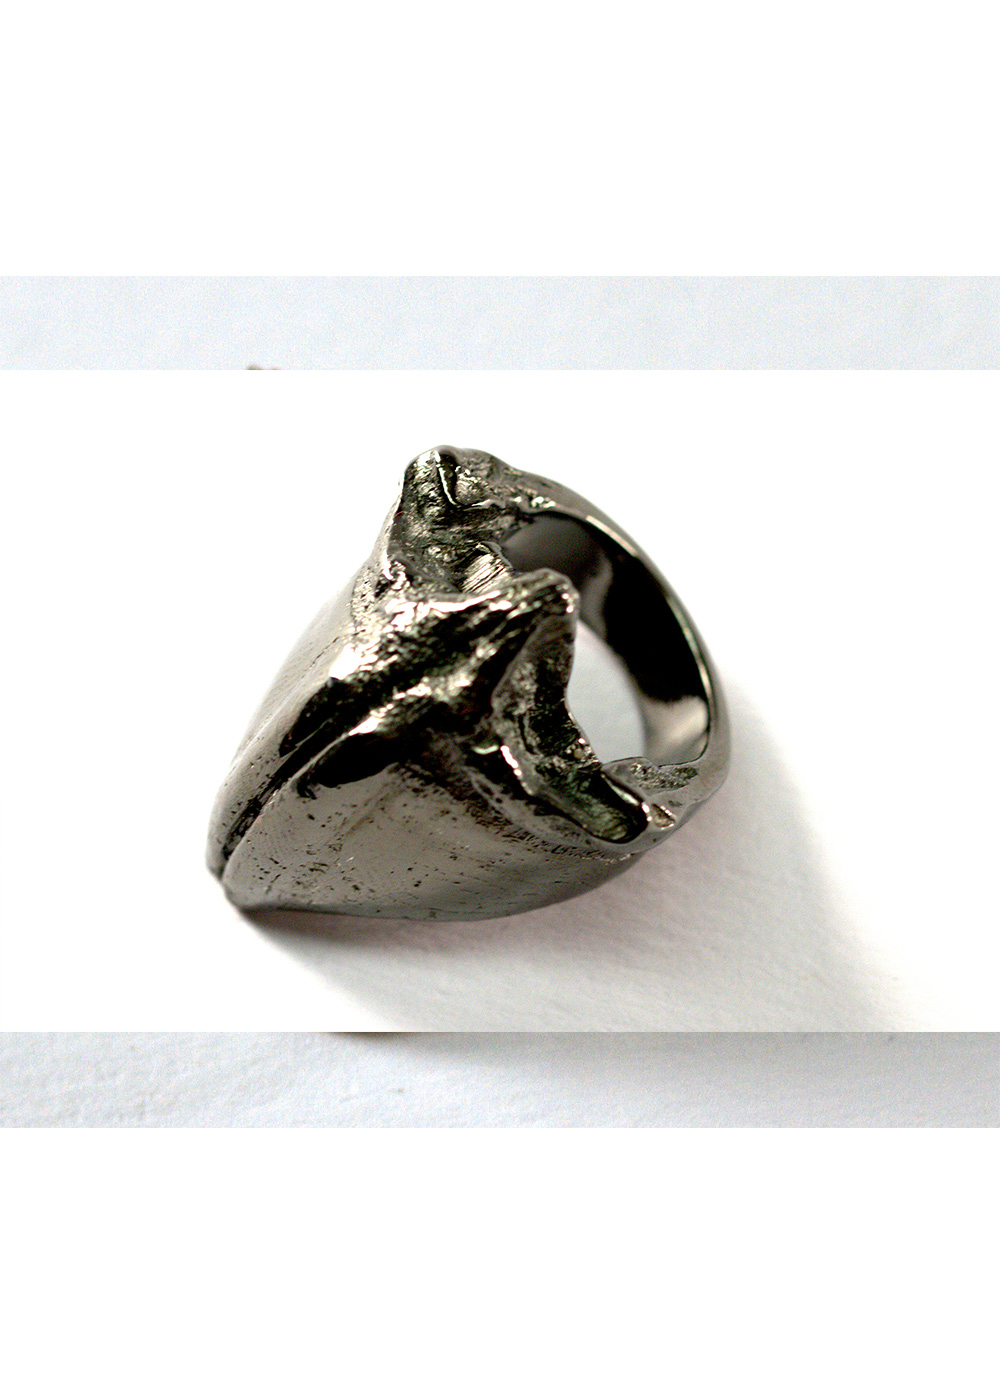 mandible ring, black rhodanized